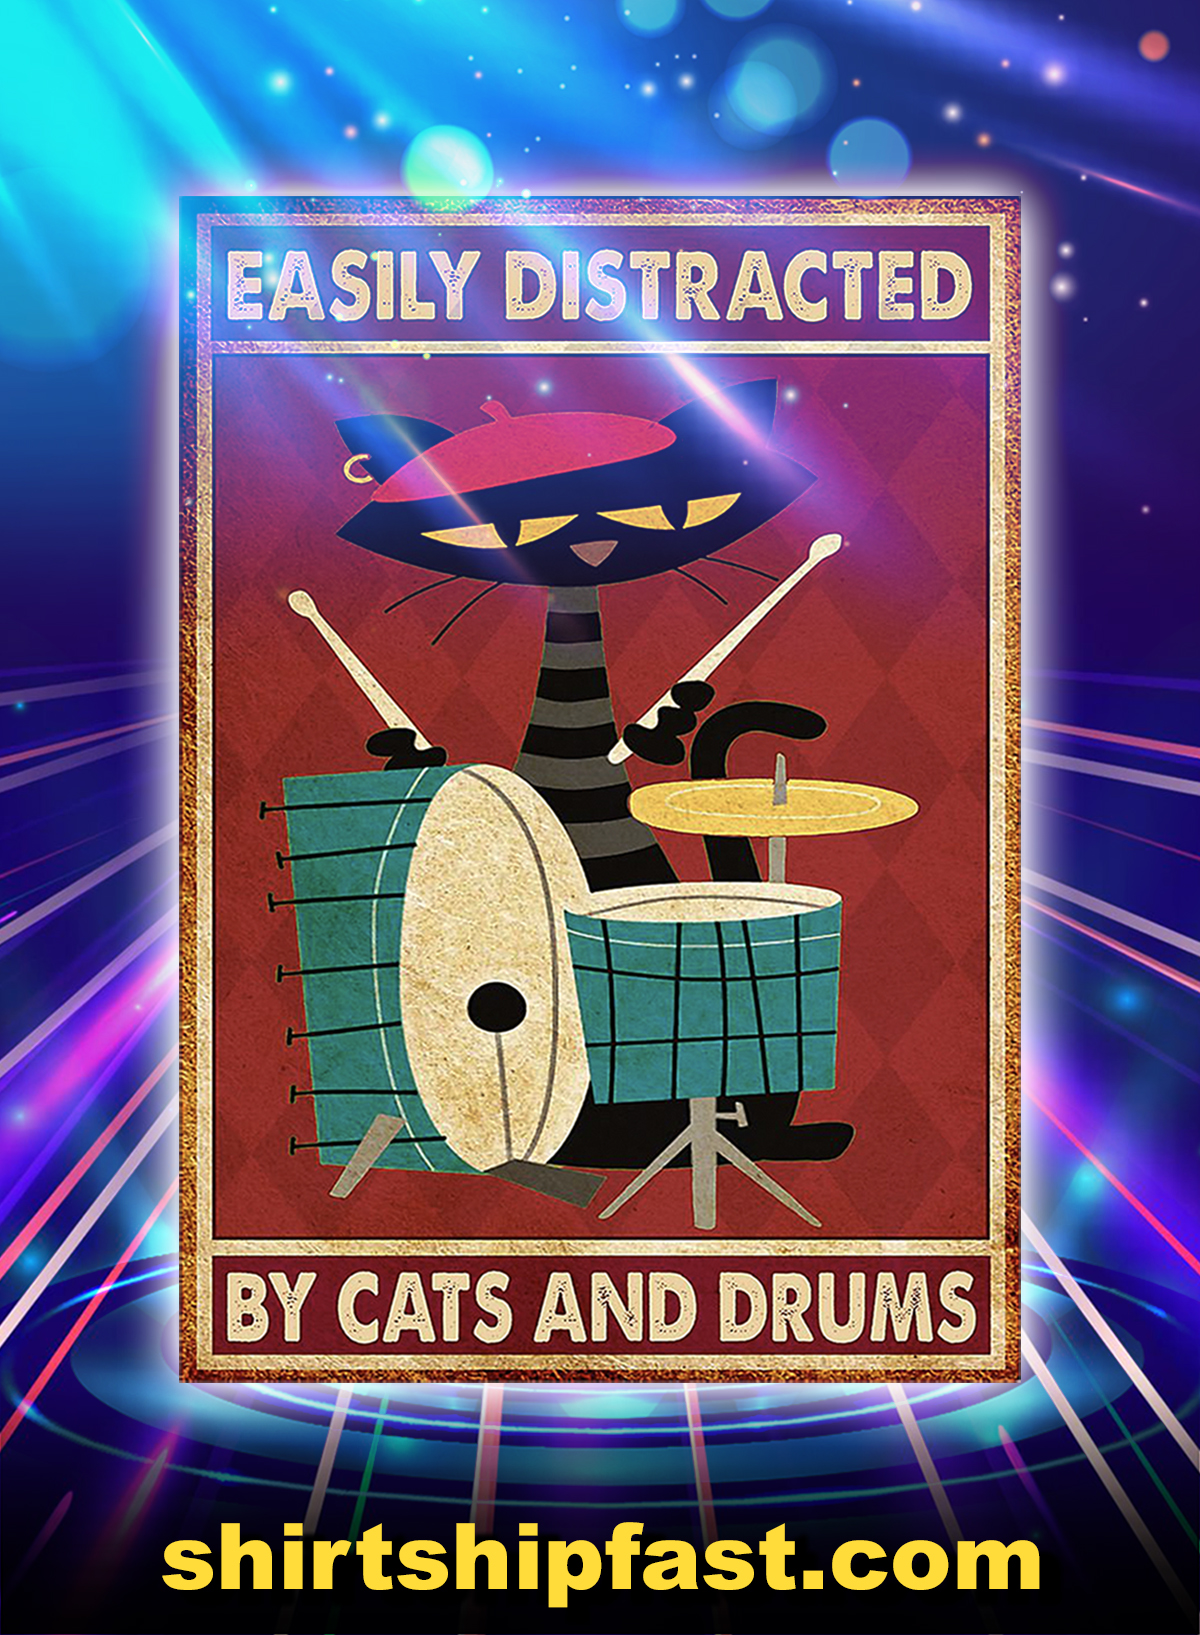 Music Cat Drum Easily Distracted Poster - A1